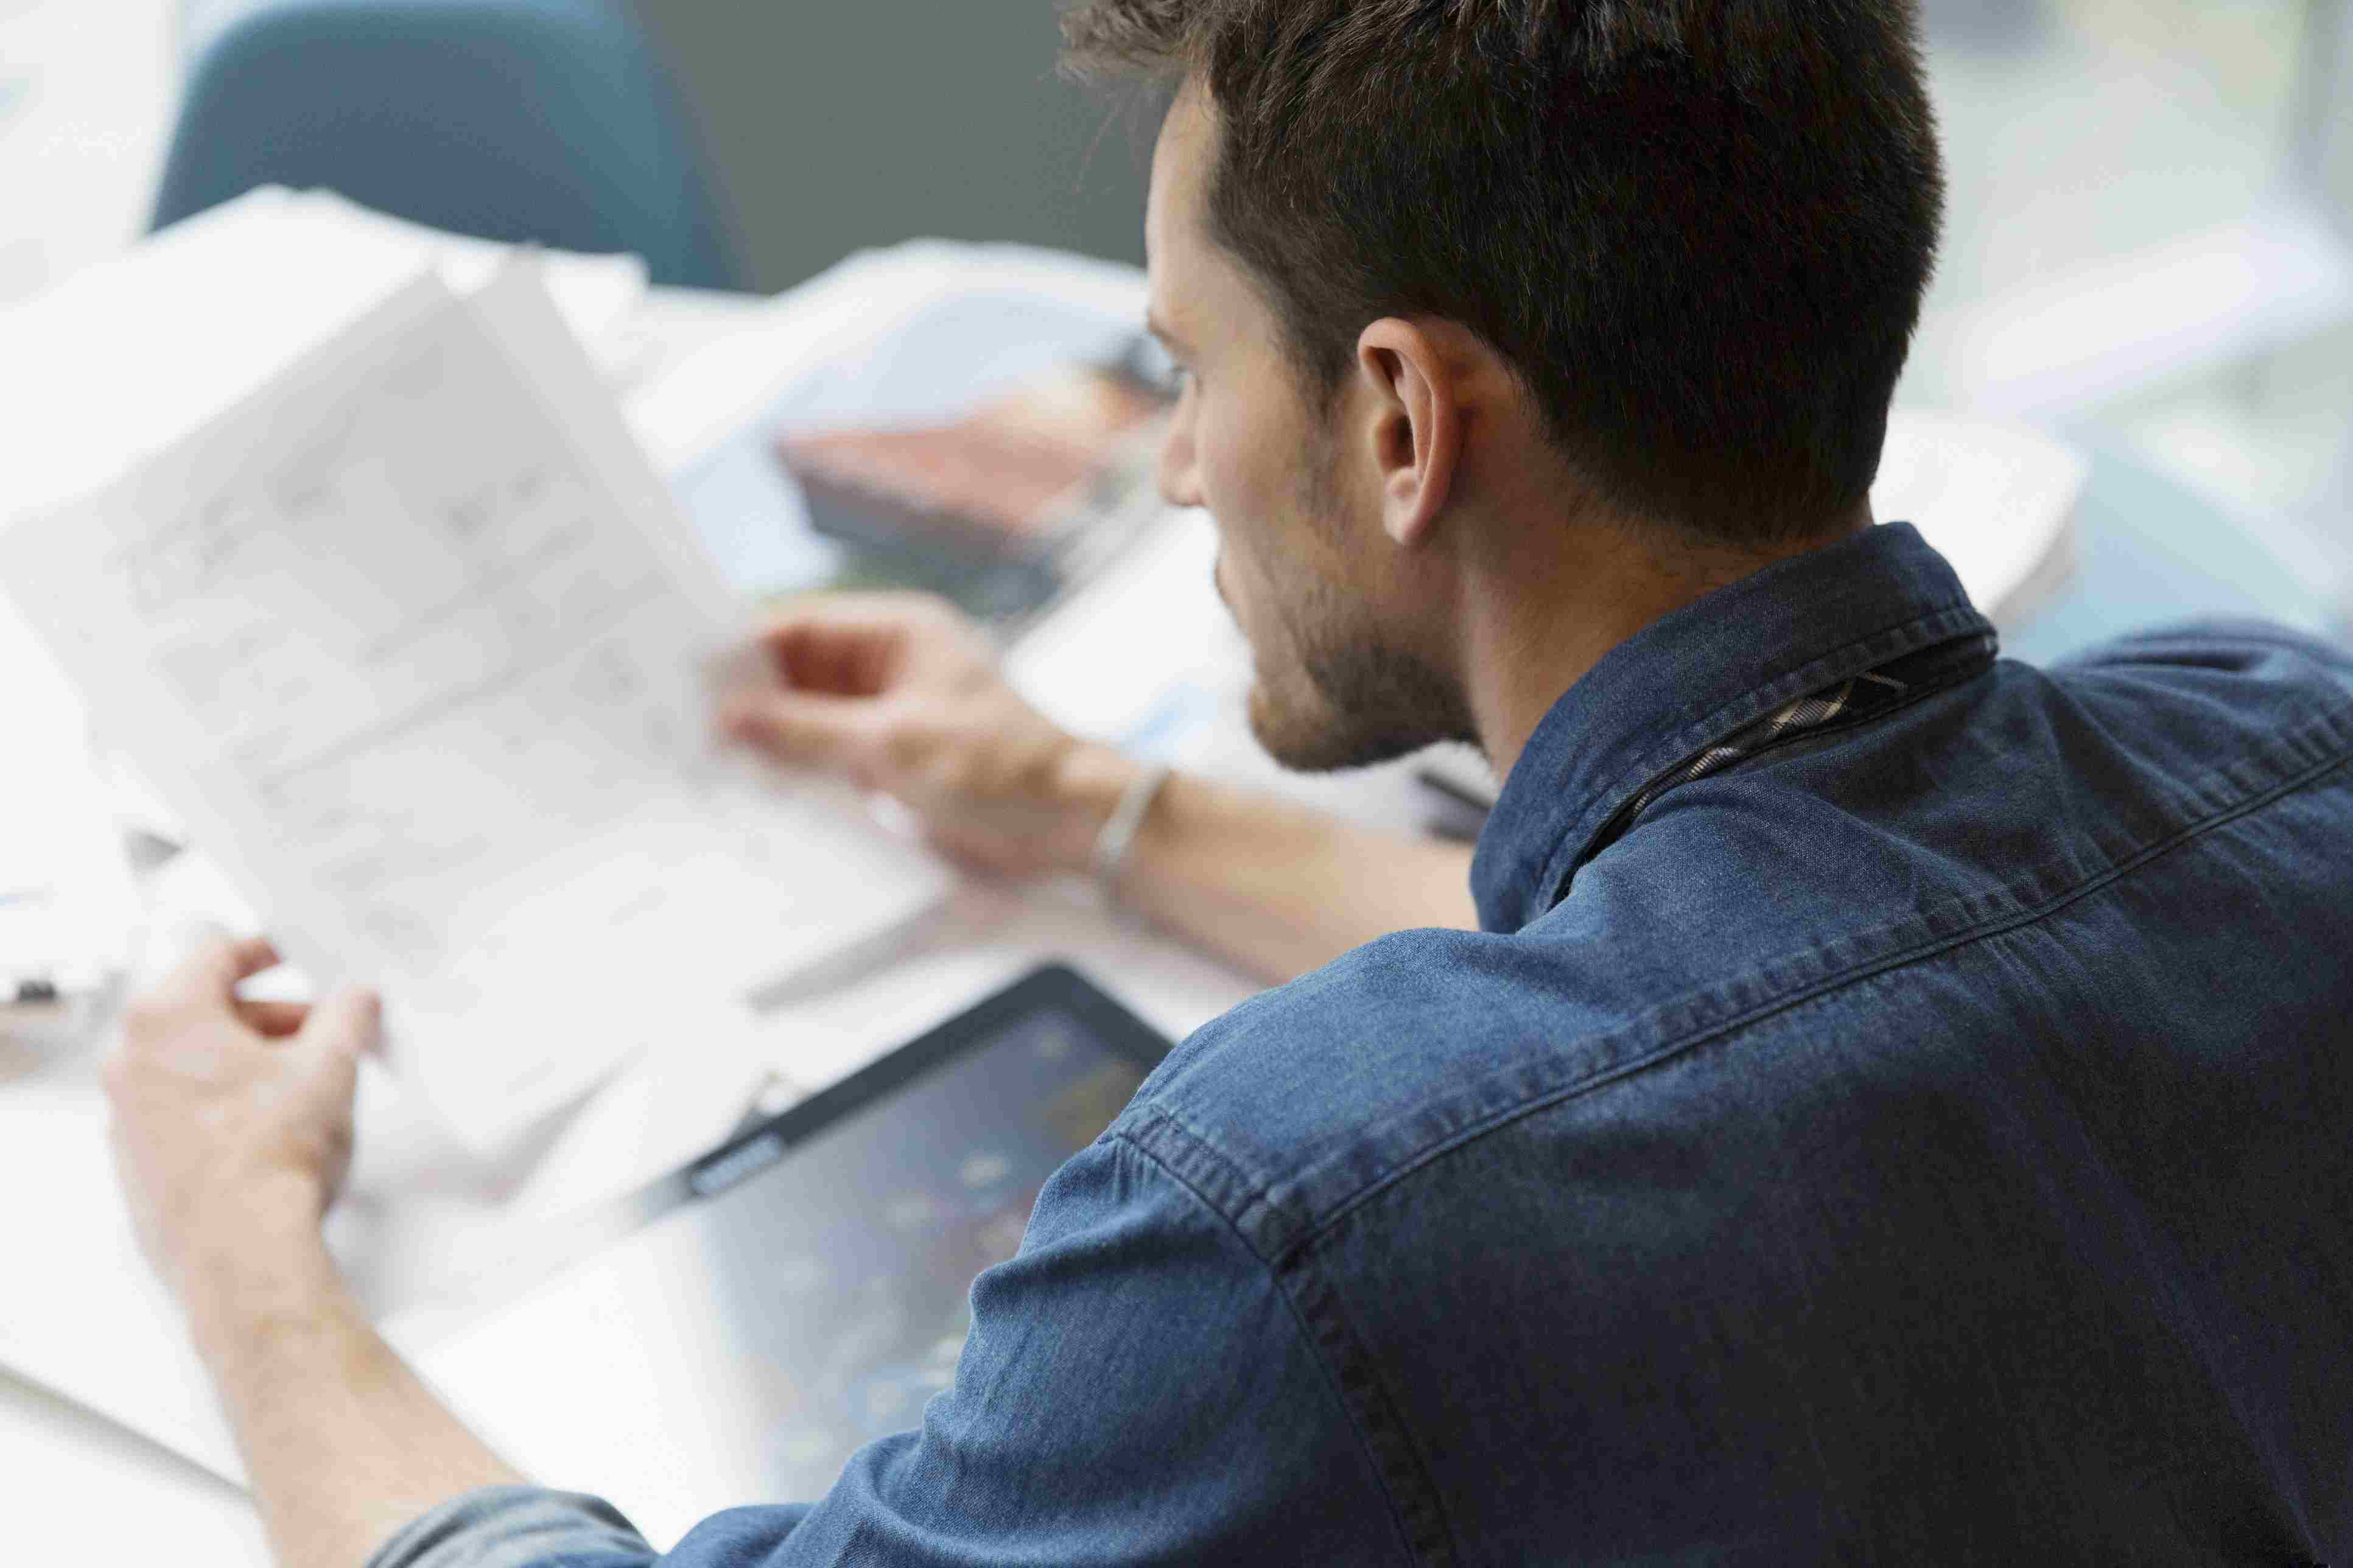 Man reviewing paperwork to register his business